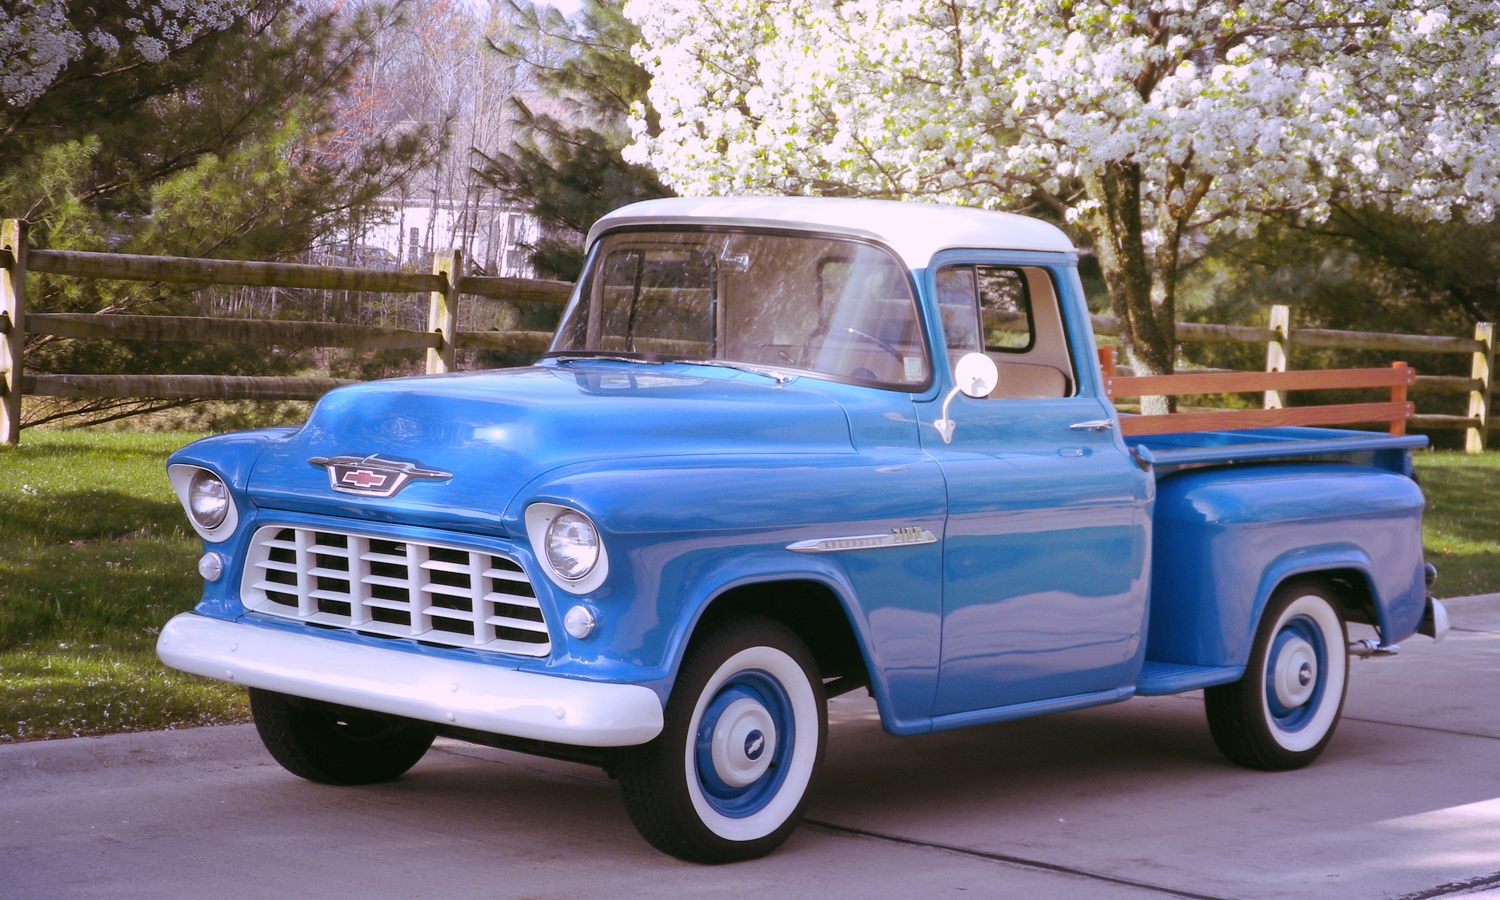 Trucks Vans Veloce Picture Cars 1980 Ford 4x4 Pickup Chevy Truck 1955 1957